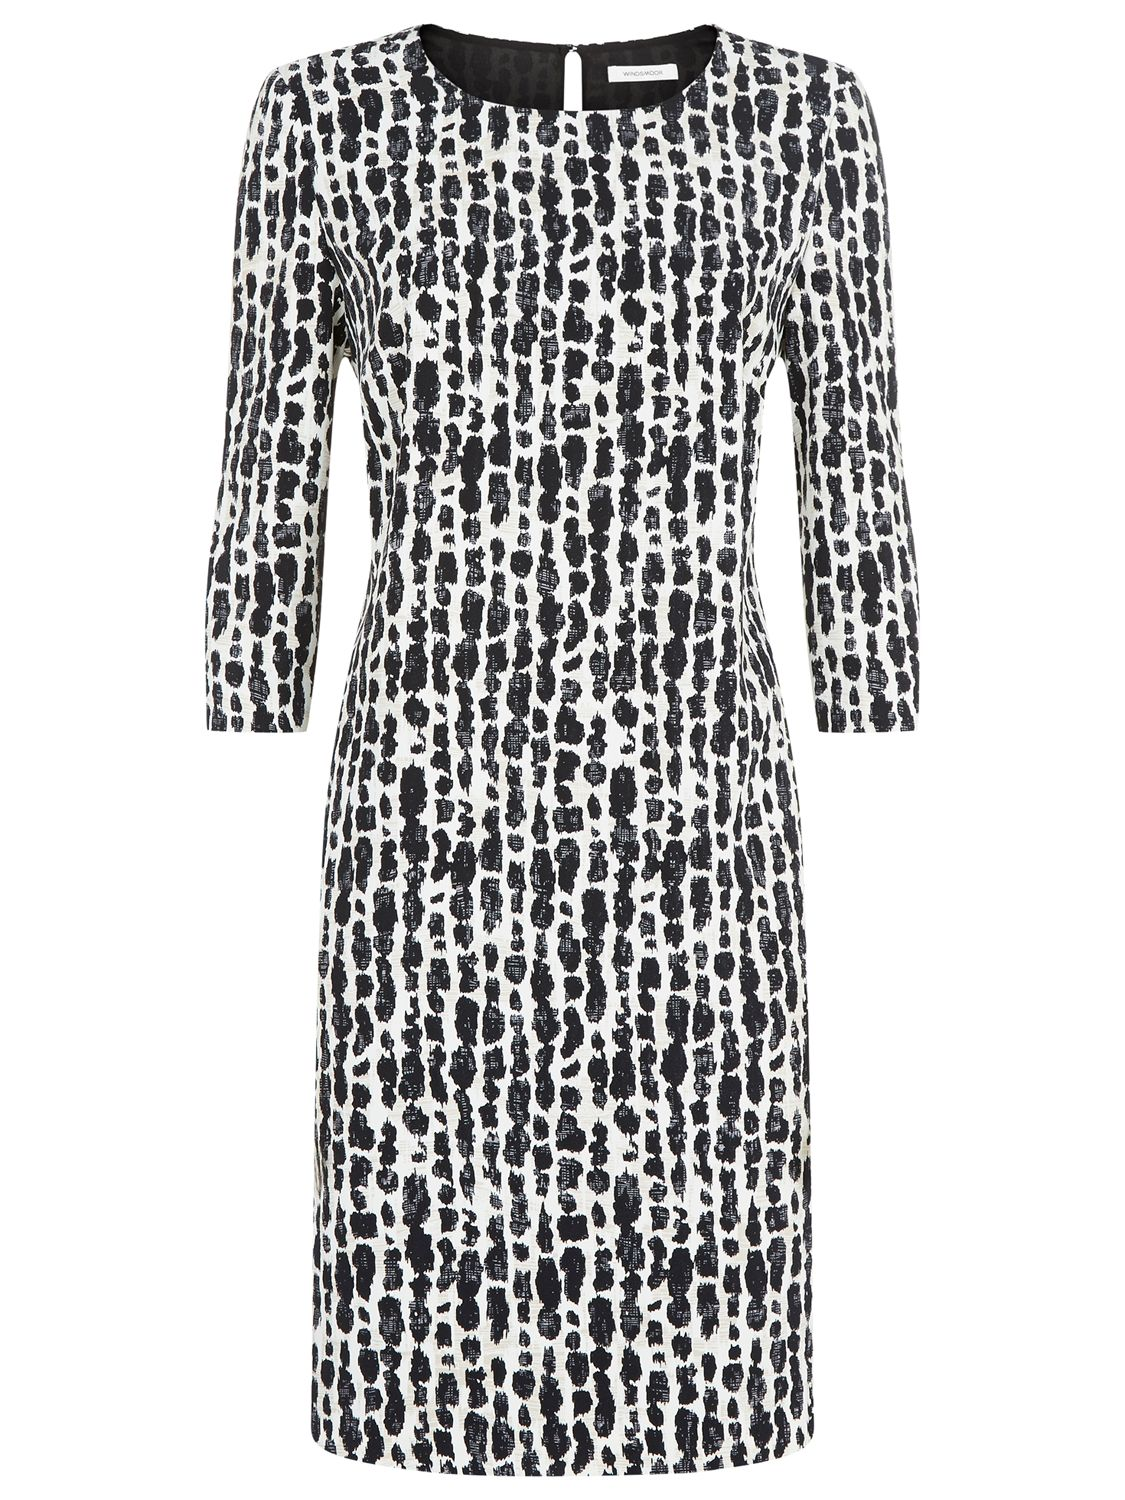 windsmoor graphic printed dress multi, windsmoor, graphic, printed, dress, multi, 20|22|14|12, clearance, womenswear offers, womens dresses offers, women, plus size, inactive womenswear, new reductions, womens dresses, special offers, 1657221